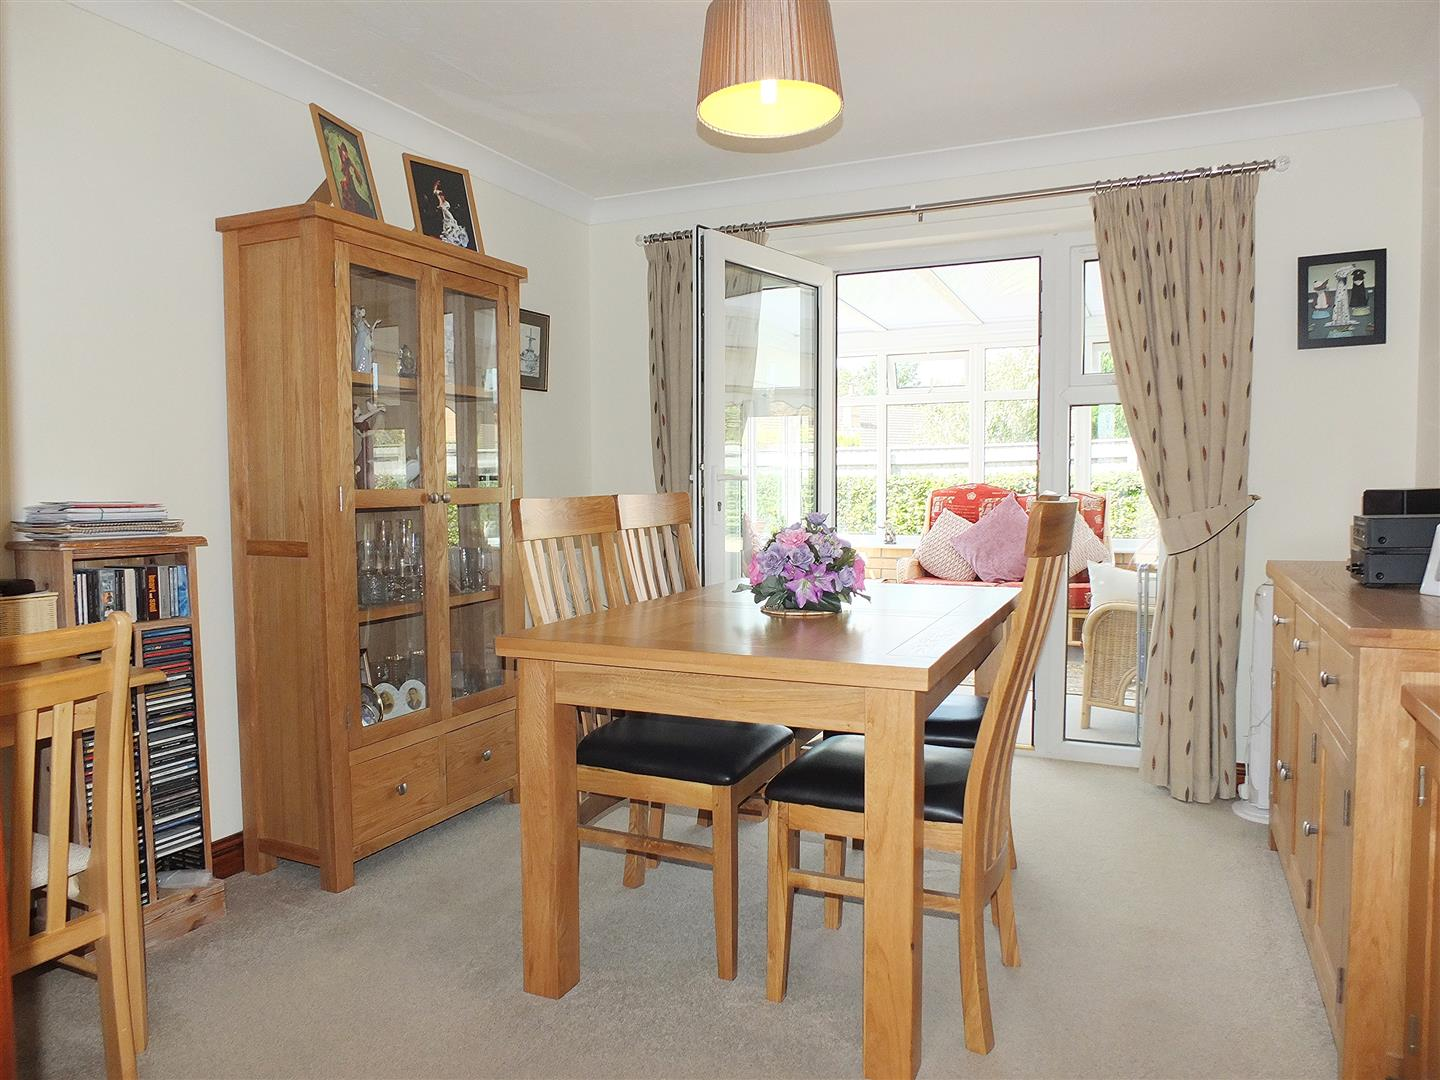 3 bed detached bungalow for sale in Long Sutton Spalding, PE12 9FT 5